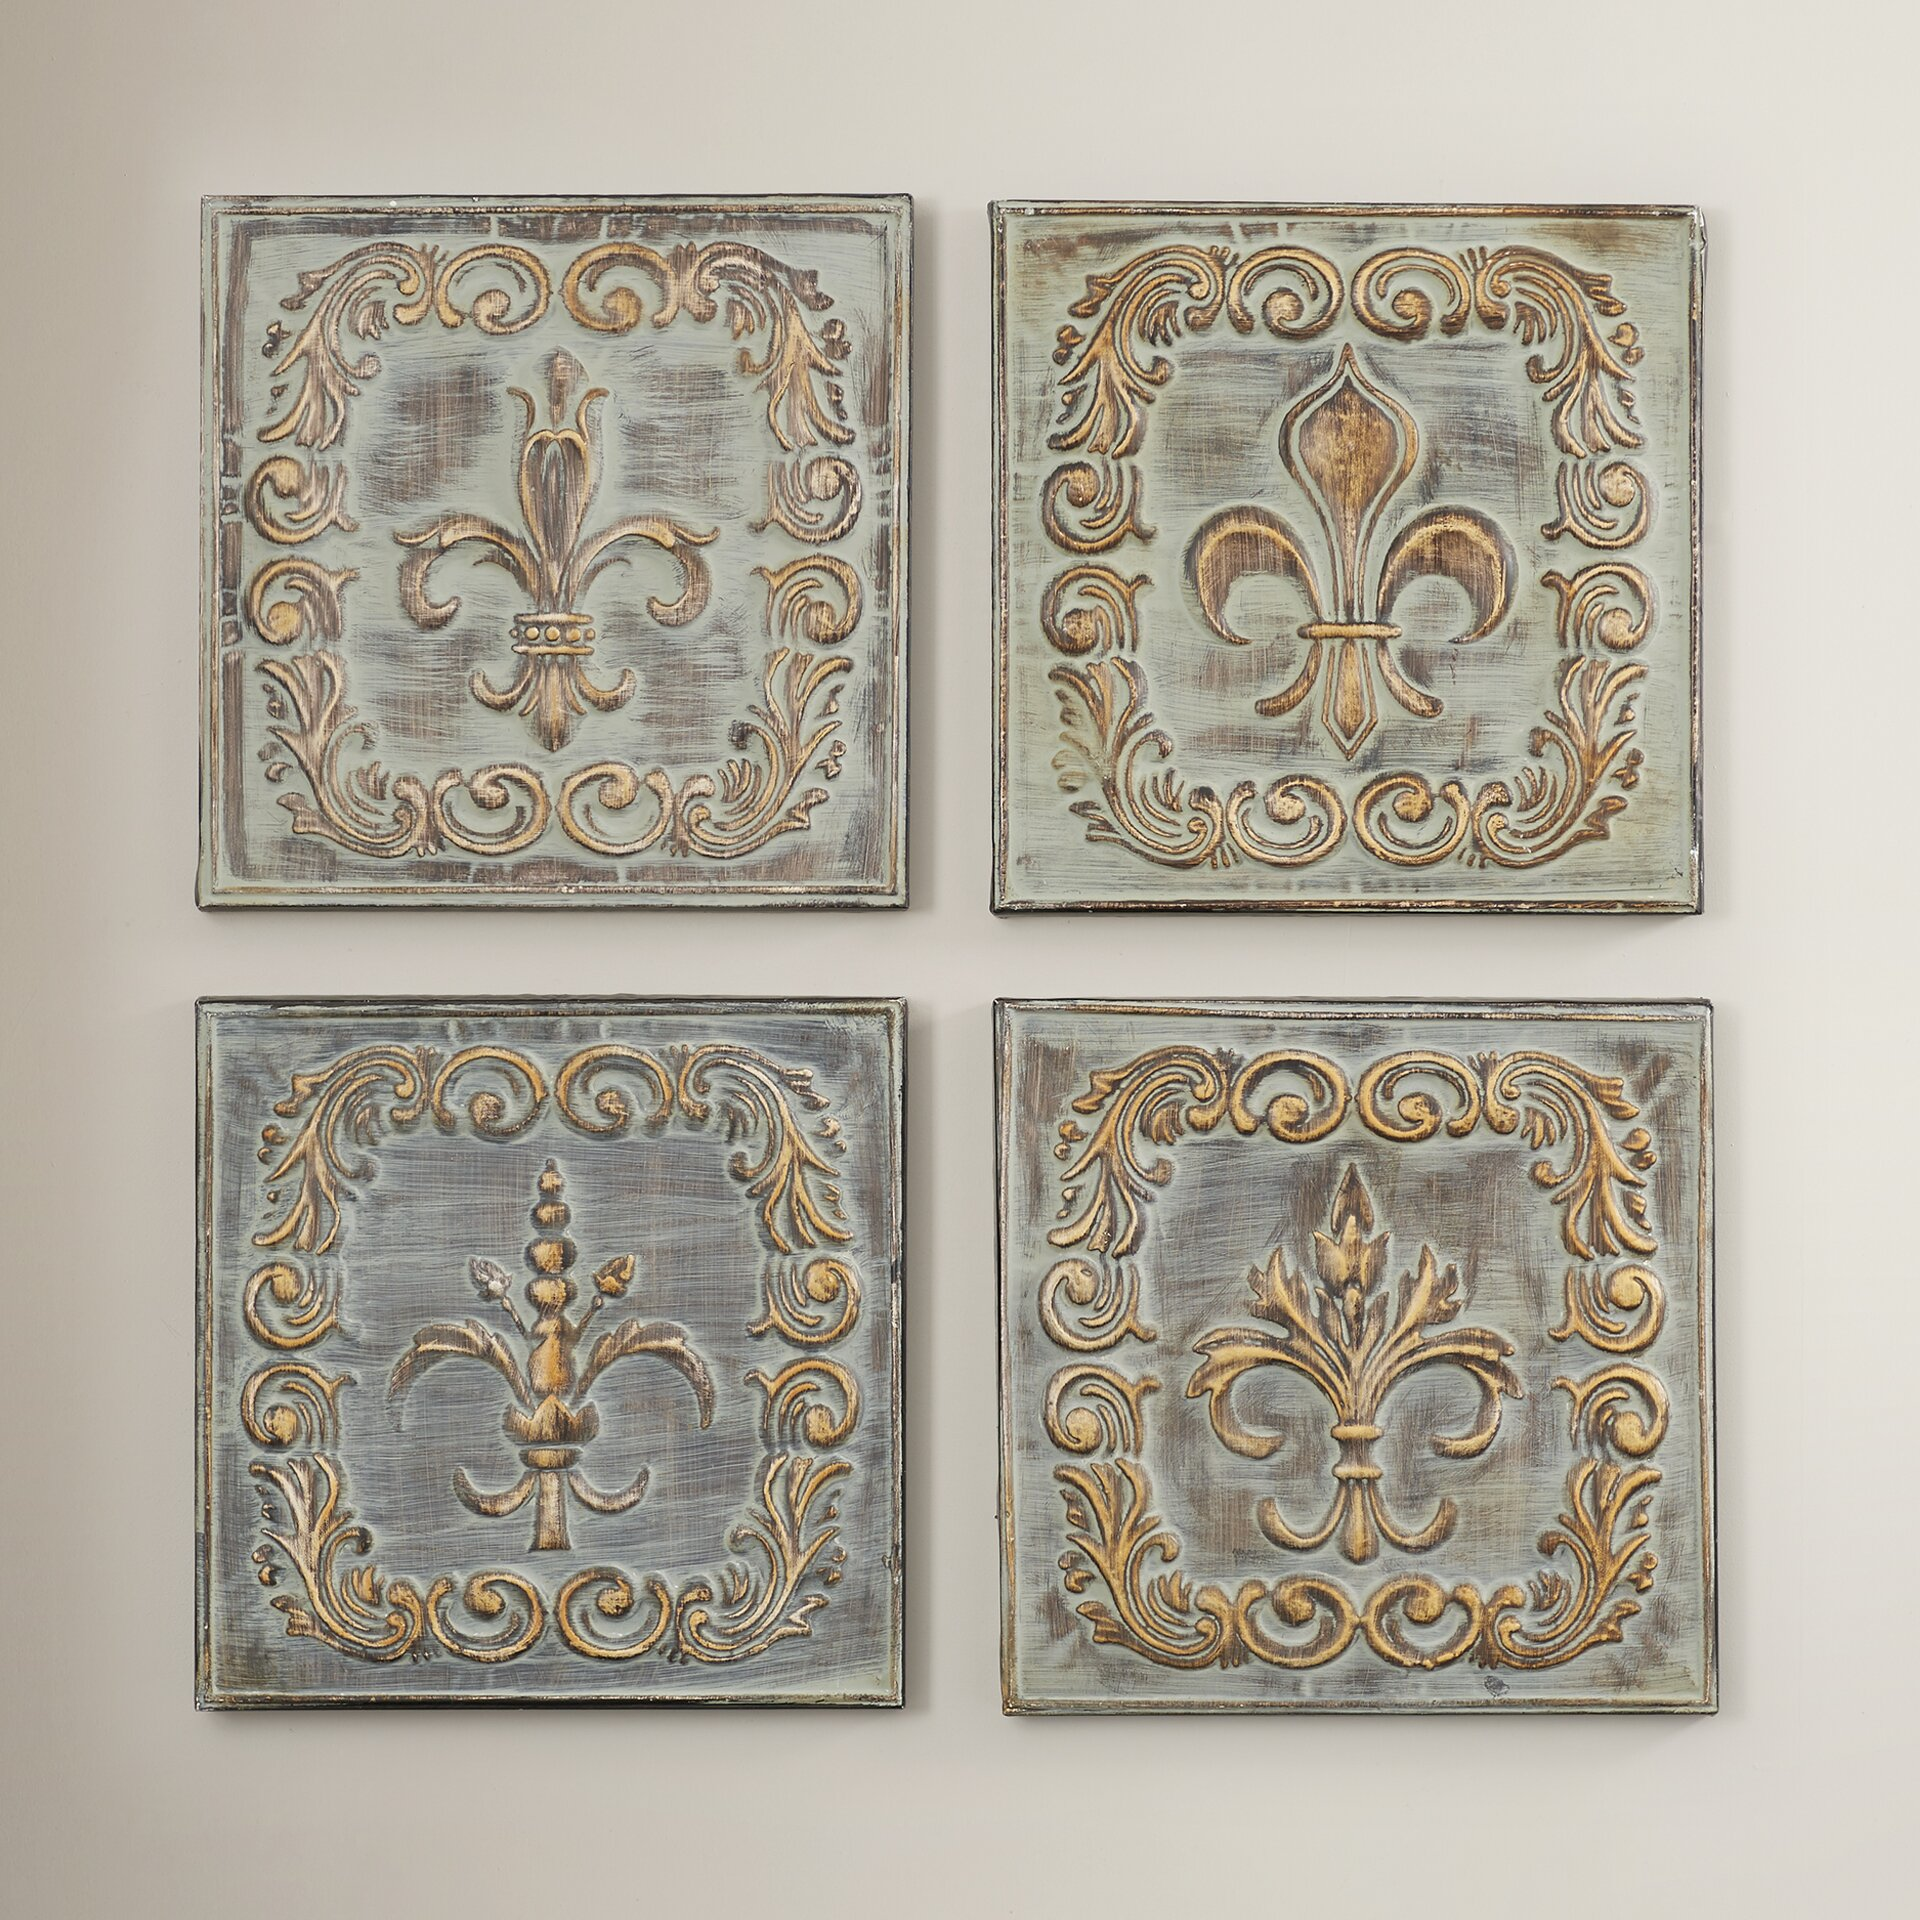 Metal Wall Decor Clearance : Lark manor metal wall d?cor wayfair